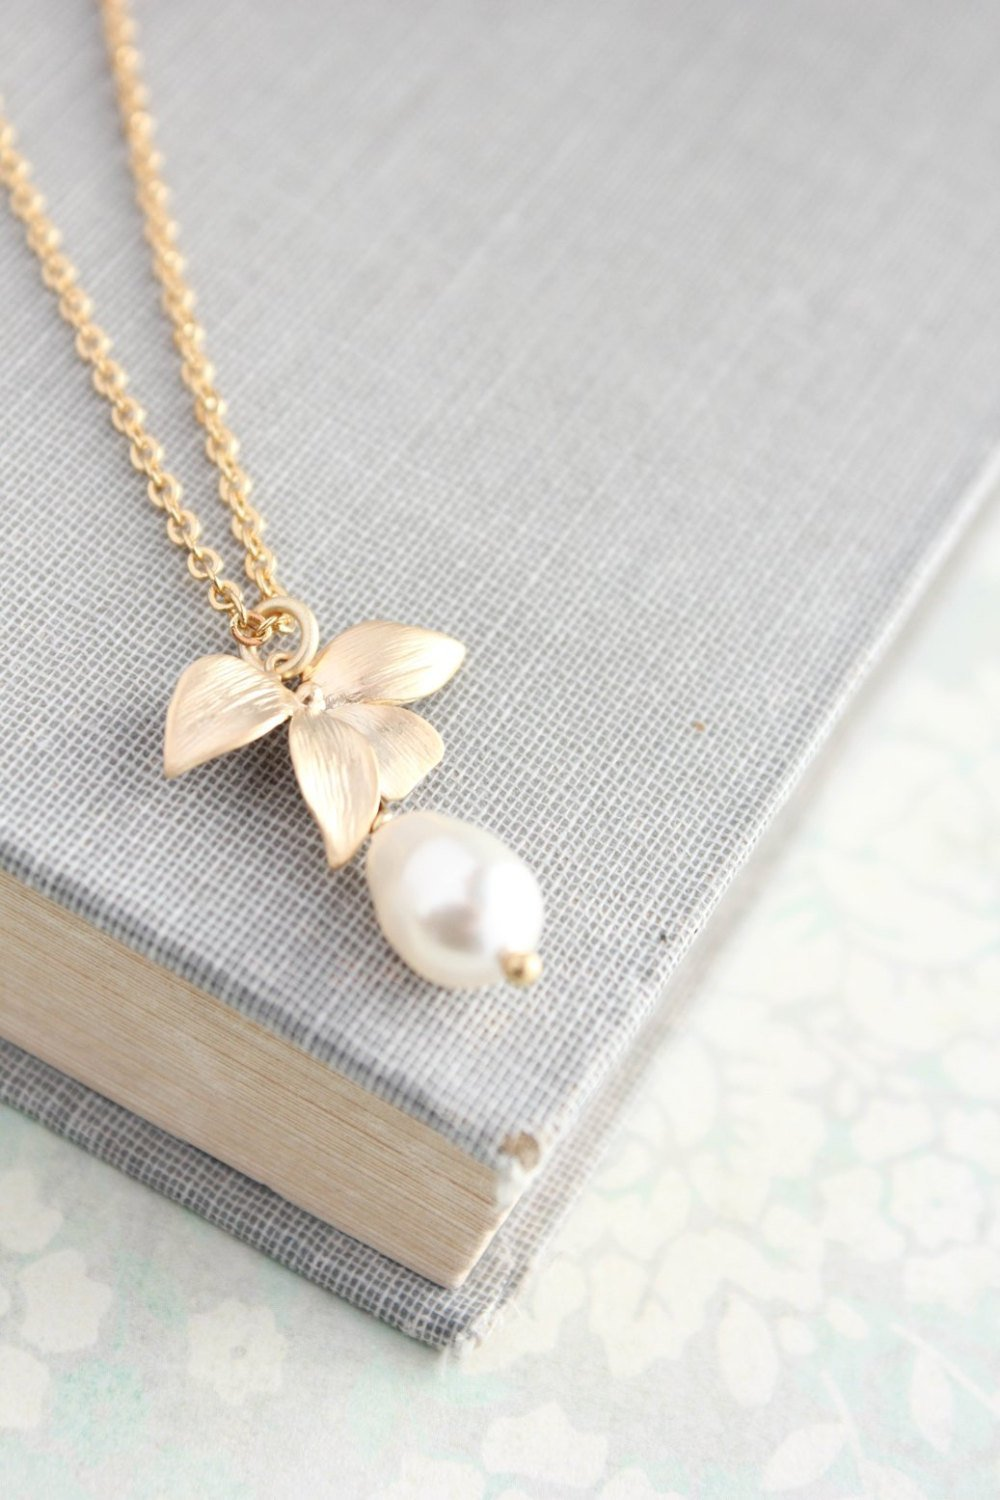 Bridemaids Jewelry - Orchid Pendant